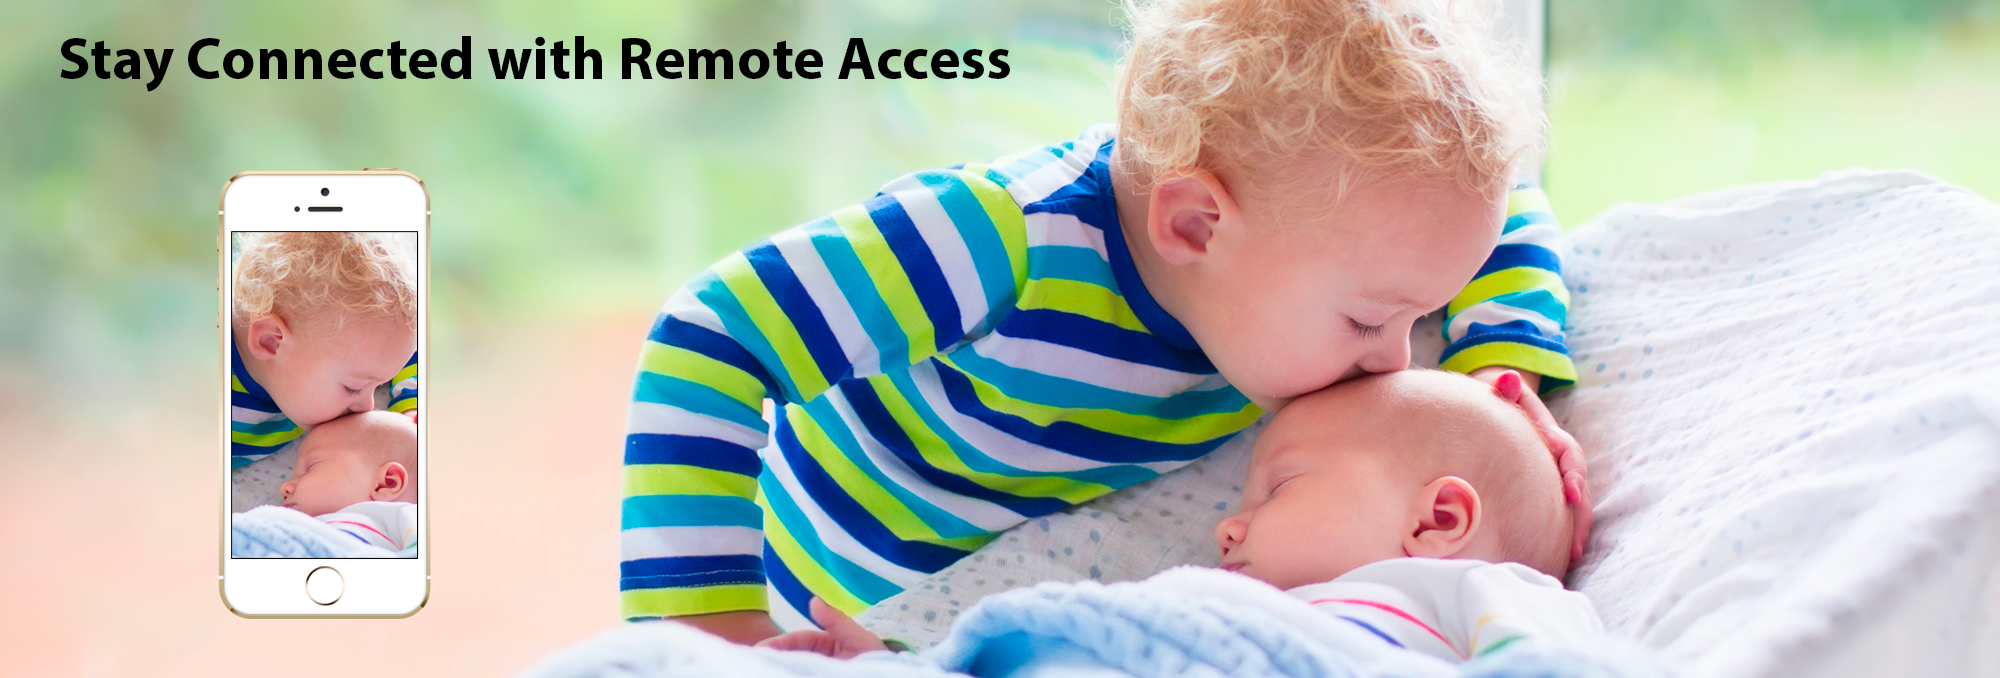 Advanced Electronic Systems - Stay Connected with Remote Access